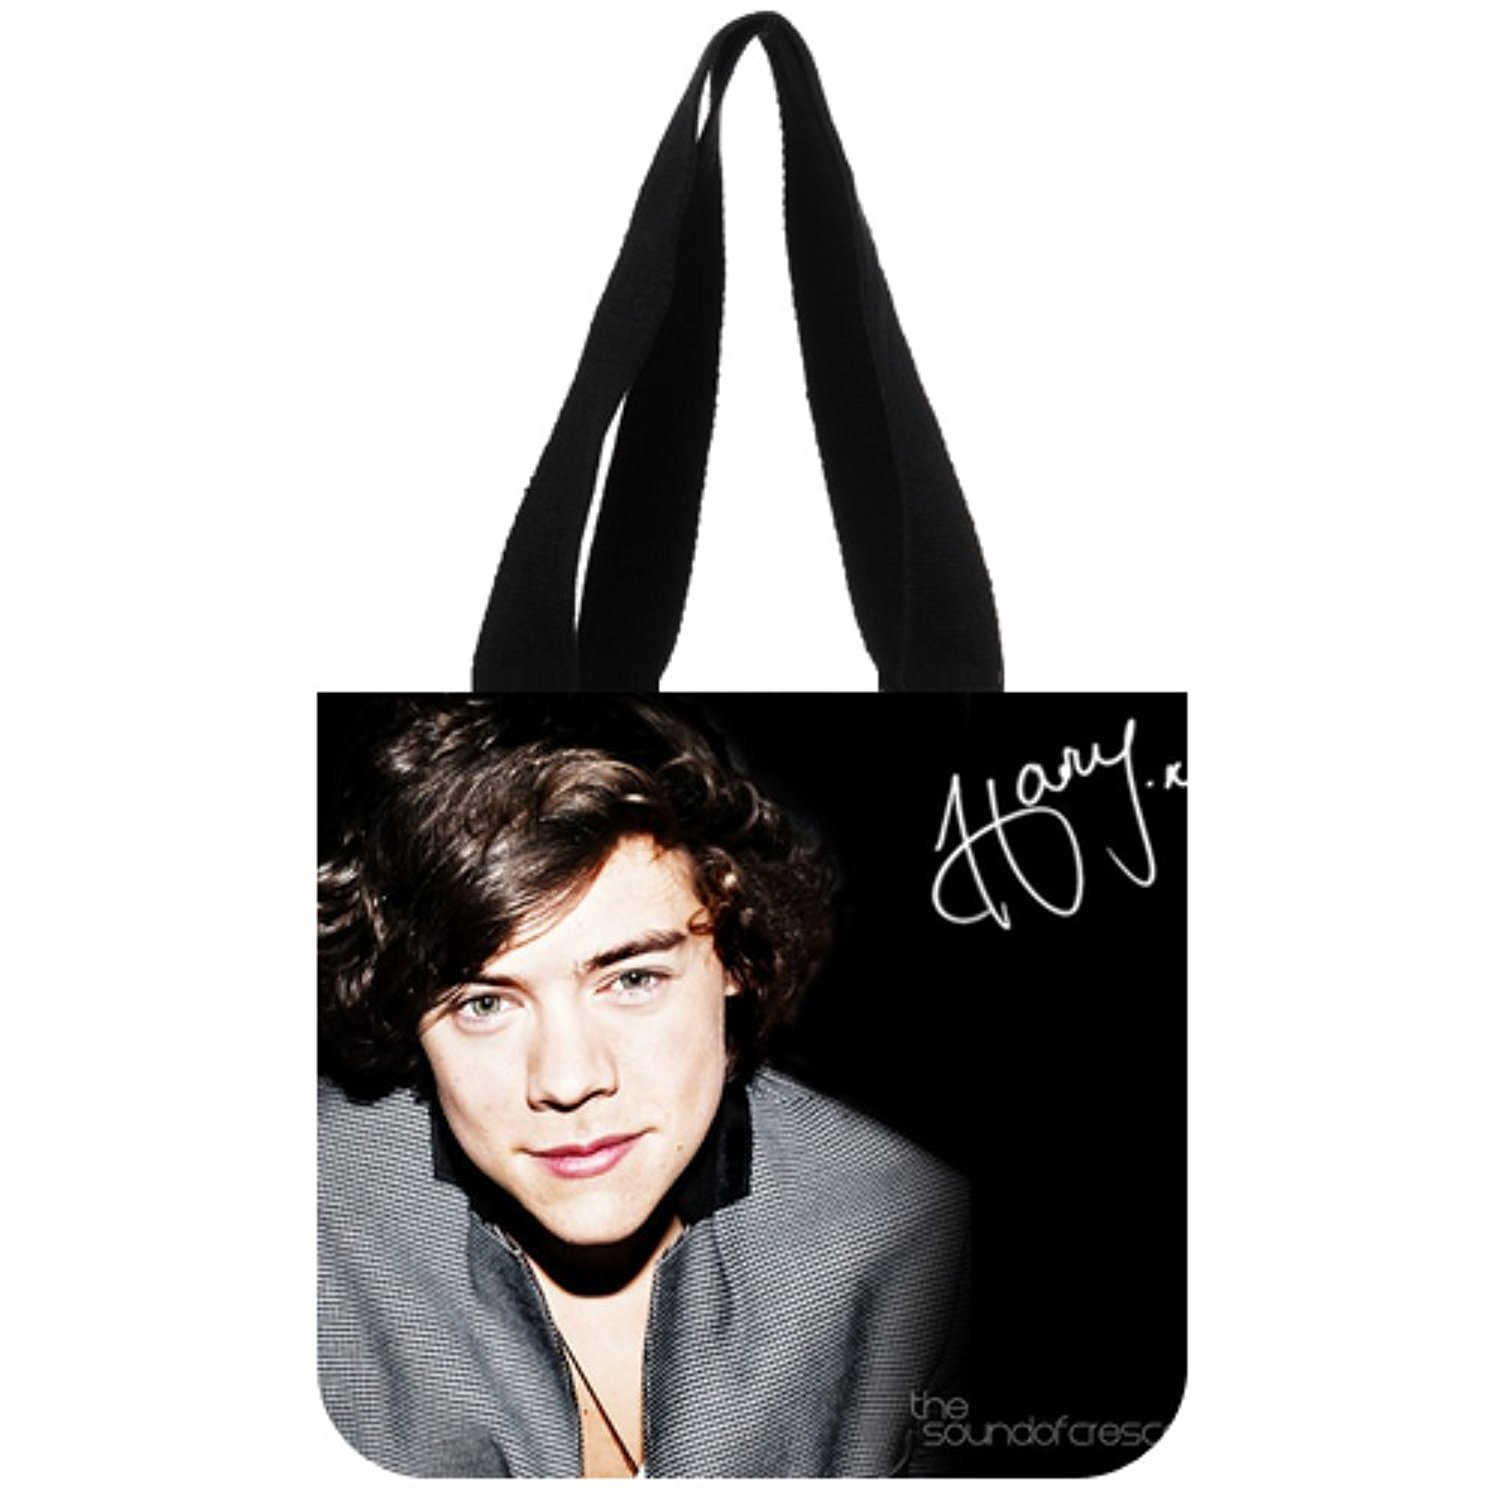 65cbc53606 Cheap Harry Styles Bag, find Harry Styles Bag deals on line at ...